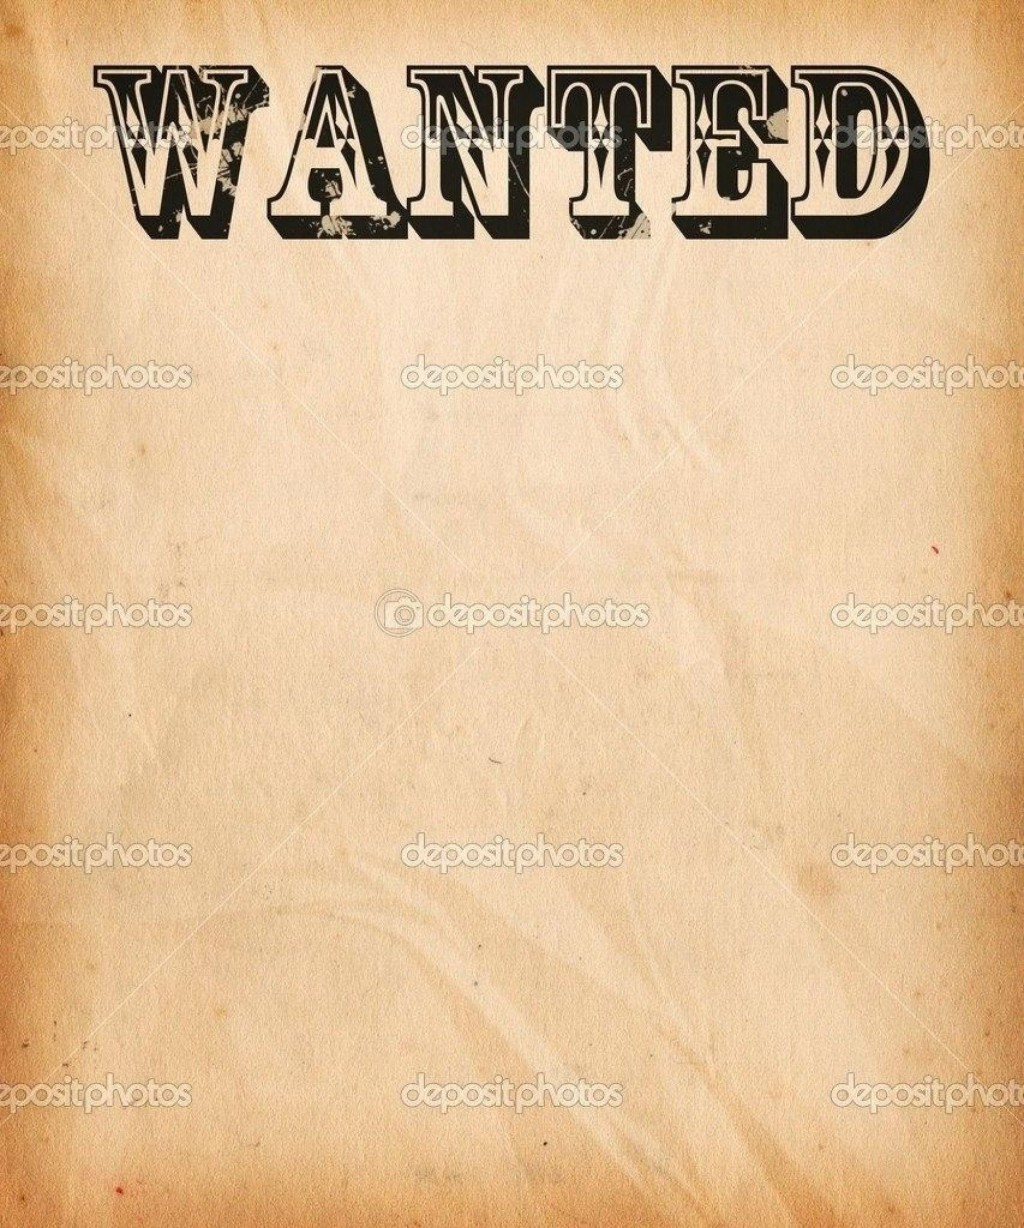 002 Wonderful Wanted Poster Template Free Printable Concept  MostLarge